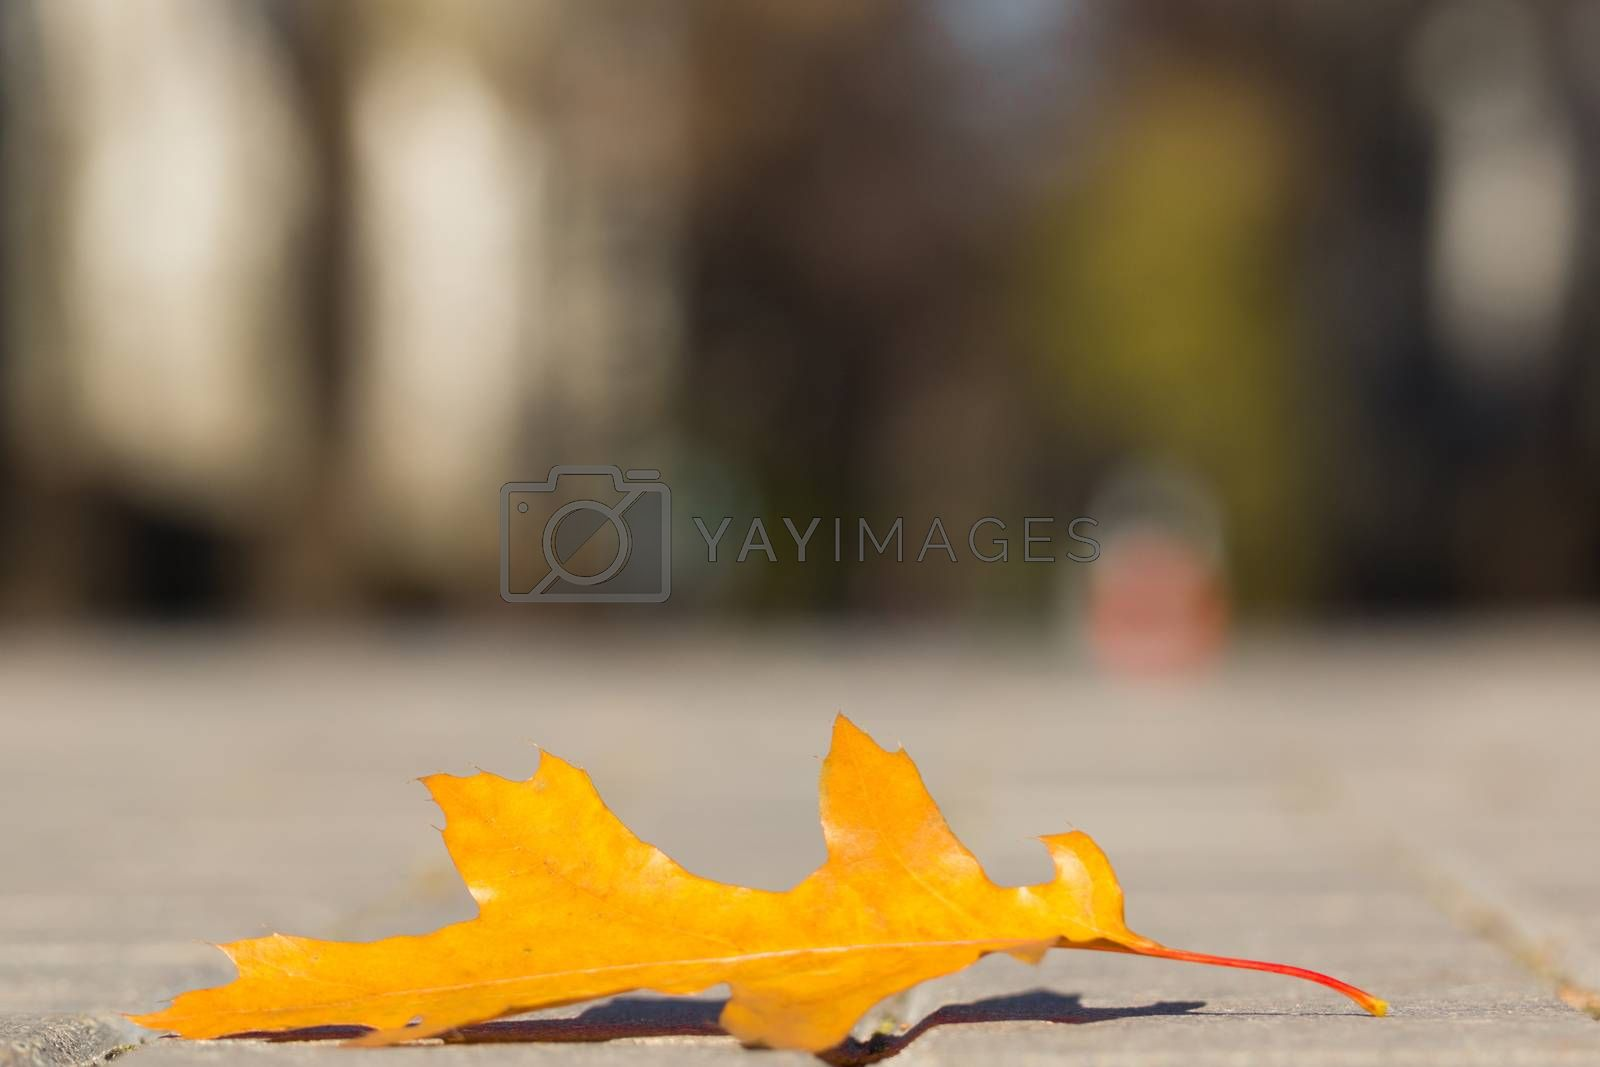 The photo shows an oak tree leaf lying on the pavement.